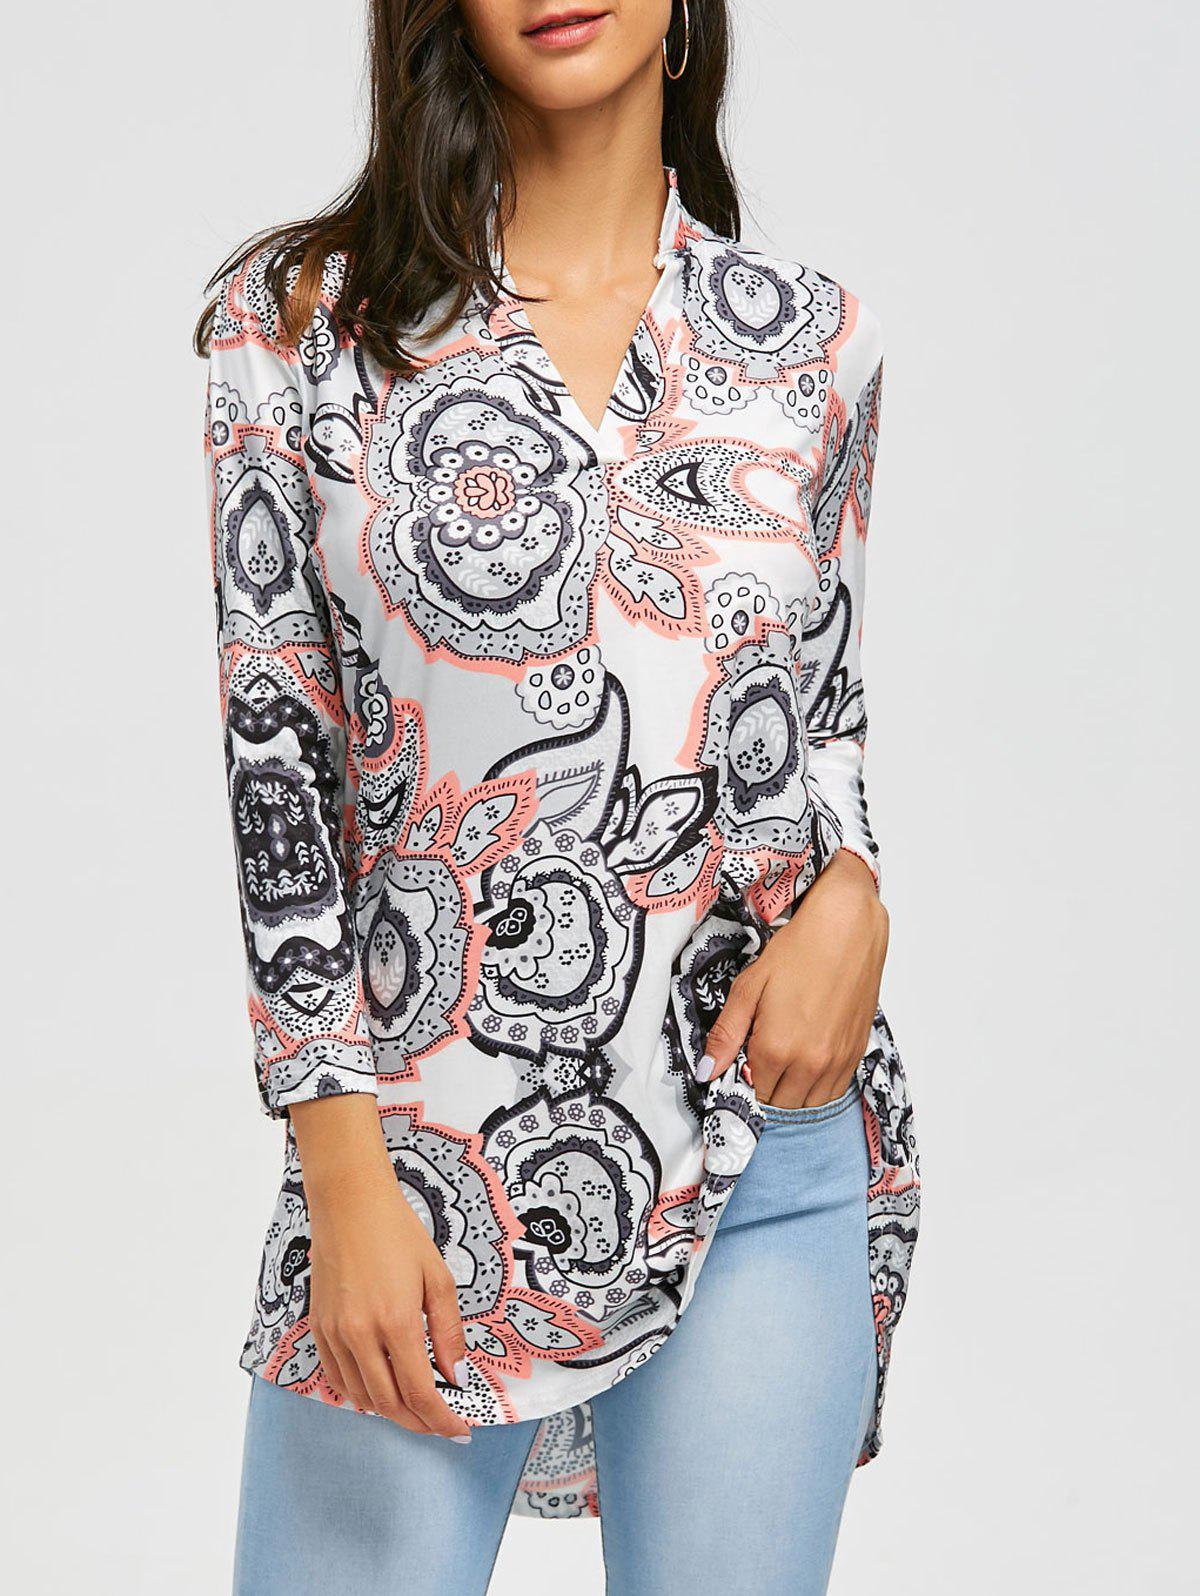 V Neck Bohemian Print Blouse - GRAY M